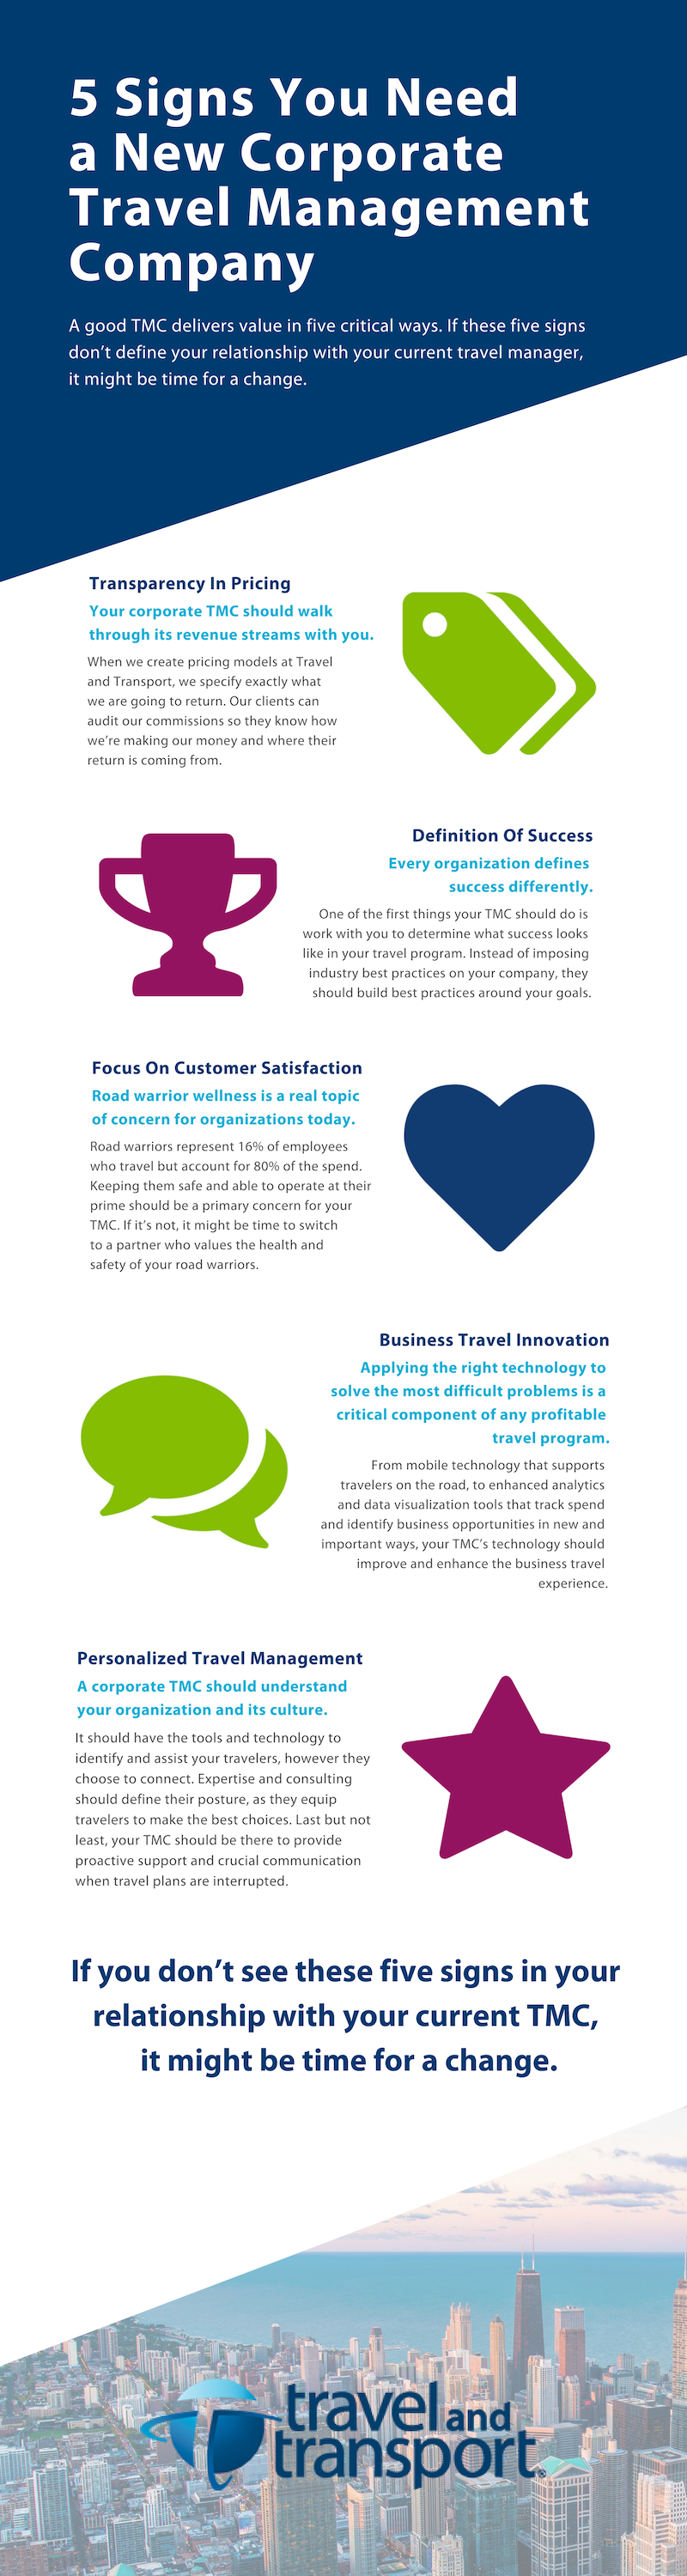 A TMC partnership delivers value in five critical ways. If these five signs don't define your relationship with your current TMC, it might be time for a change.  #1 – Transparency in Pricing #2 – Definition of Success #3 – Focus on Customer Satisfaction #4 – Business Travel Innovation #5 – Personalized Travel Management